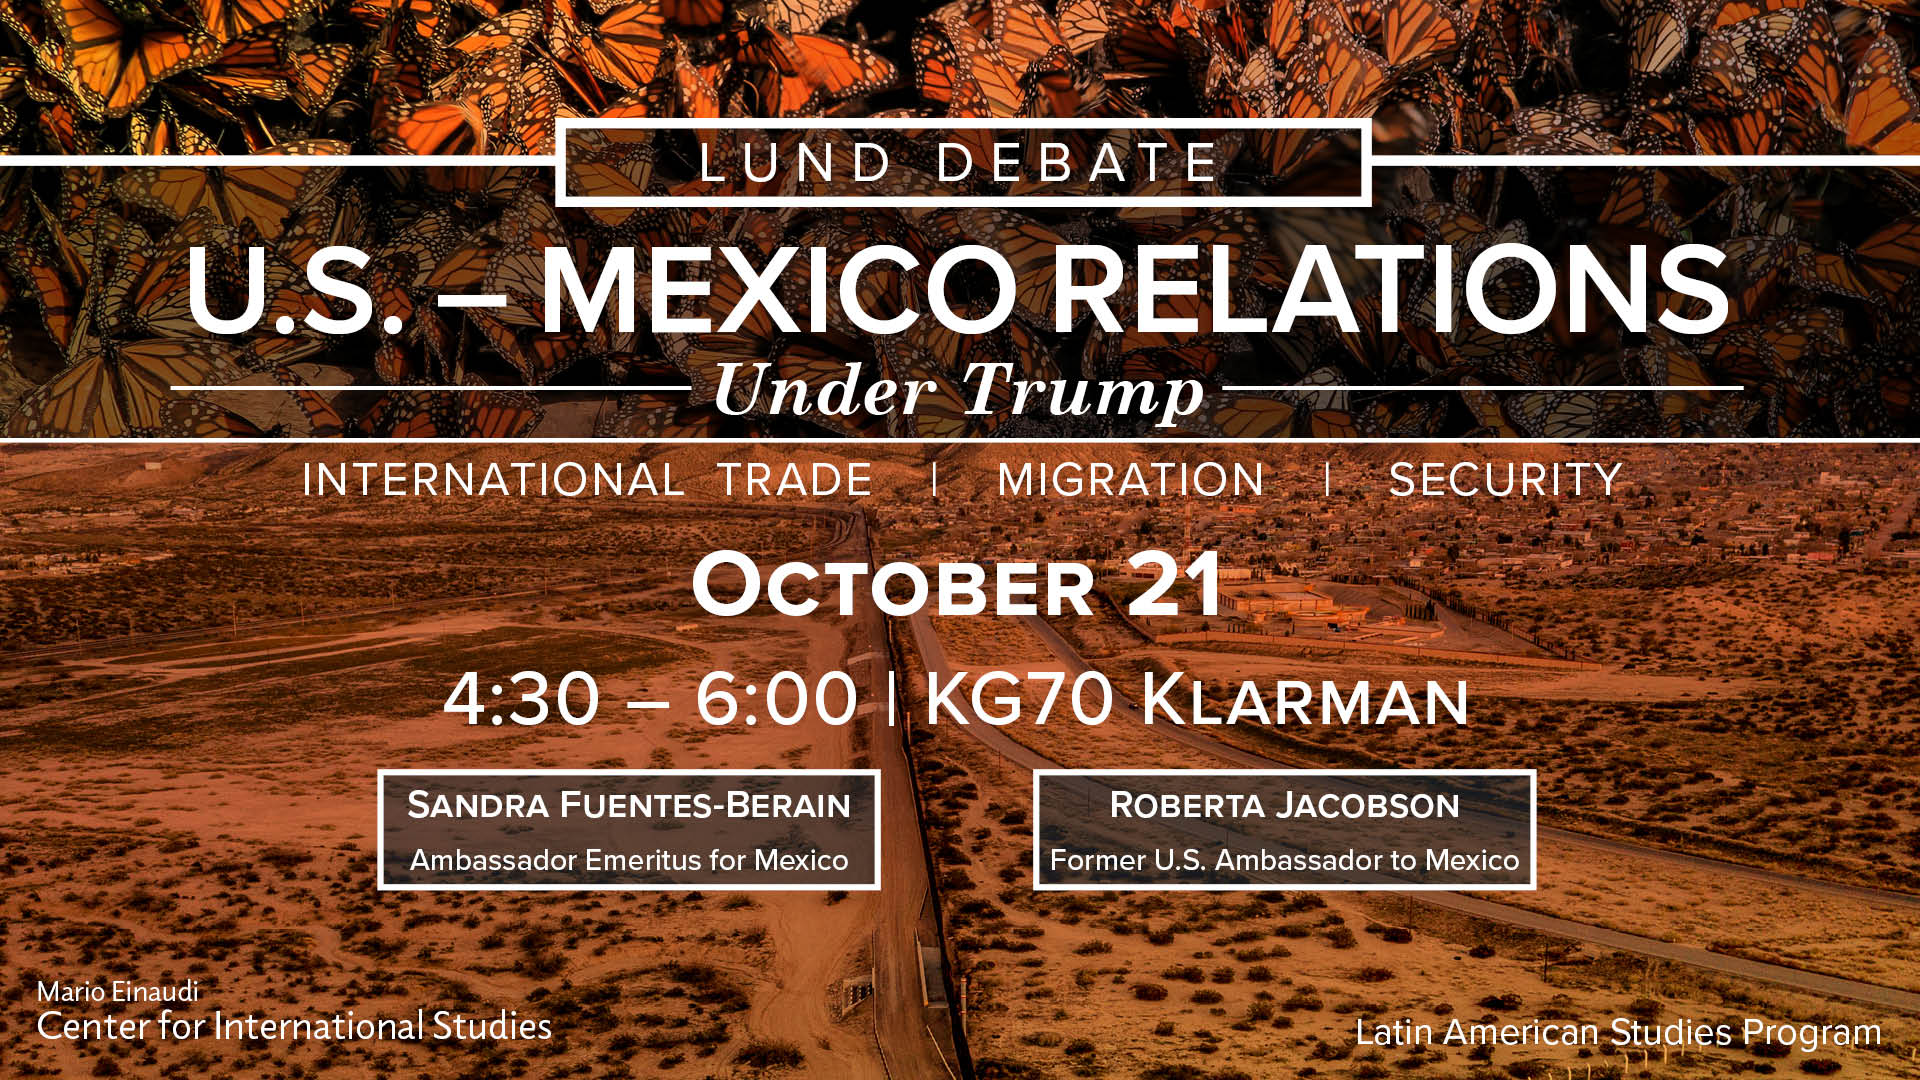 Lund Debate 2019 poster, U.S.-Mexico border and butterflies